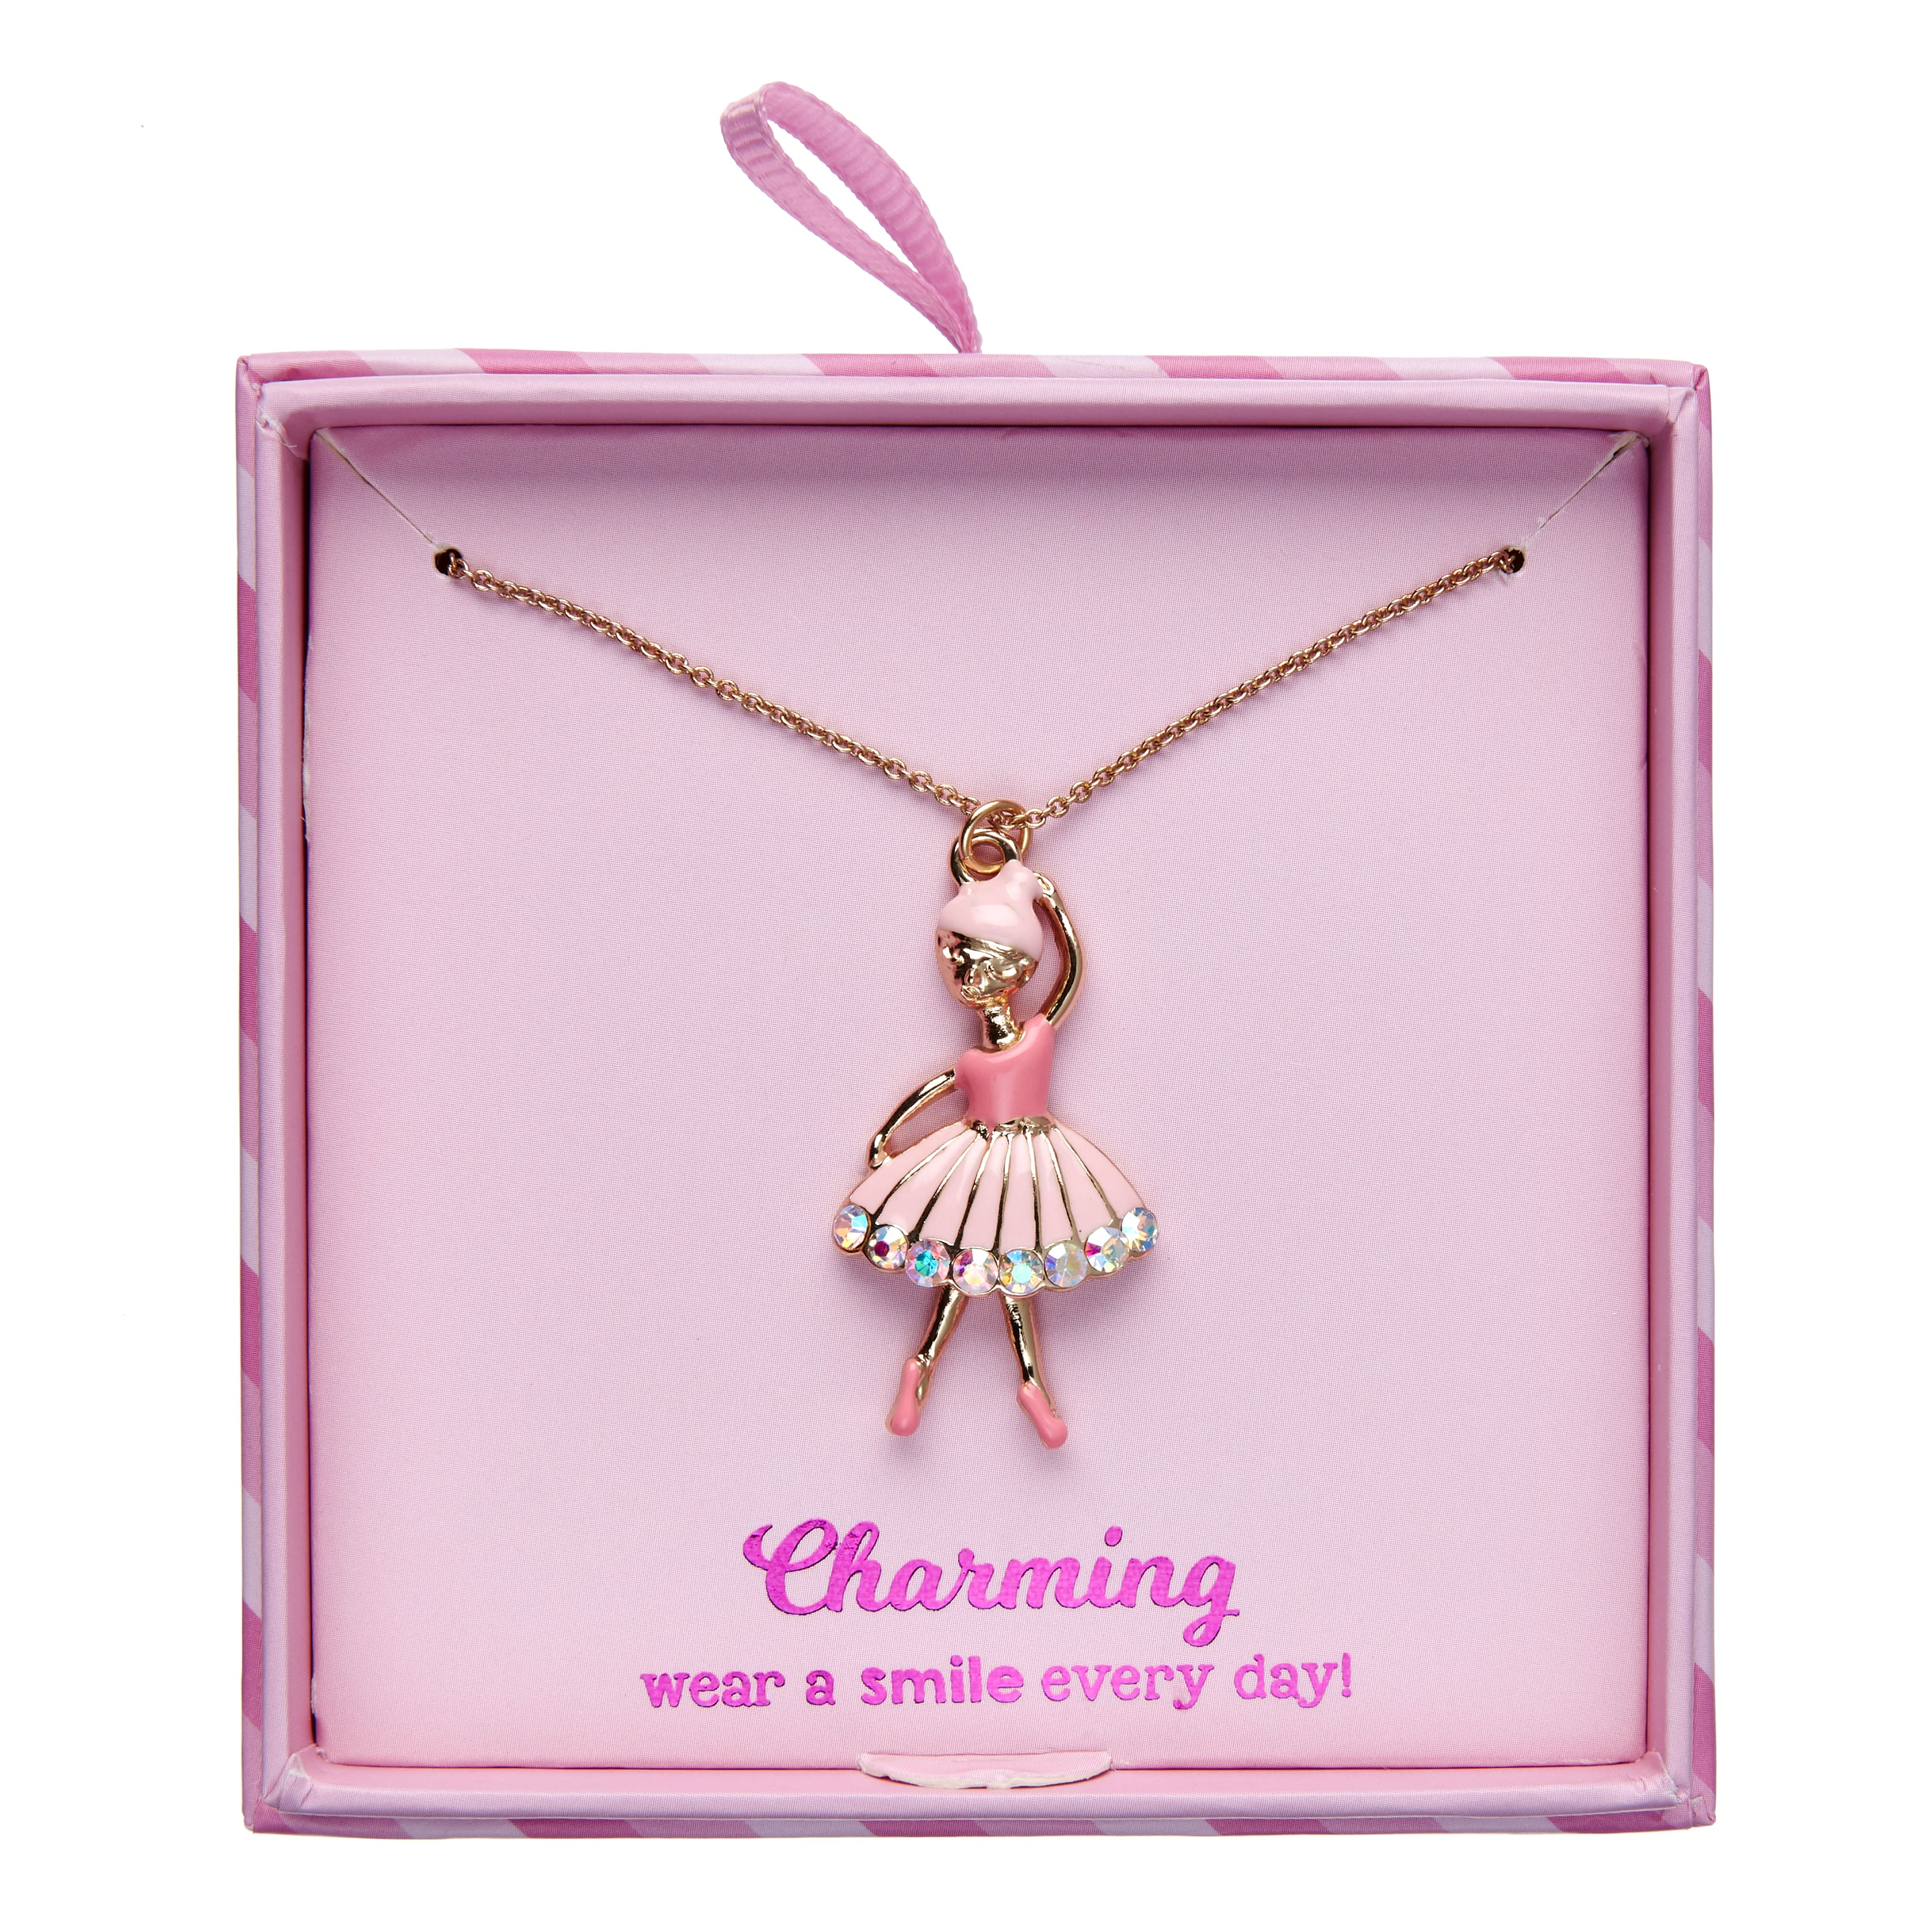 Charming Ballet Pendant Necklace Gift Box